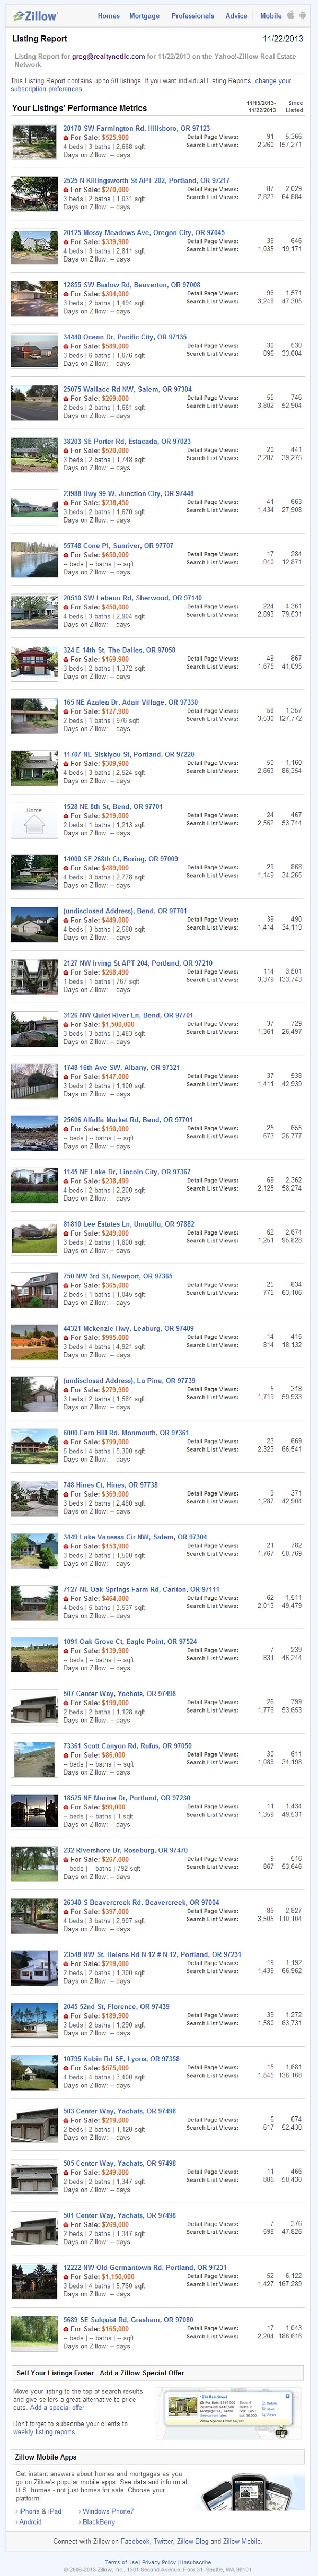 zillow-listing-report